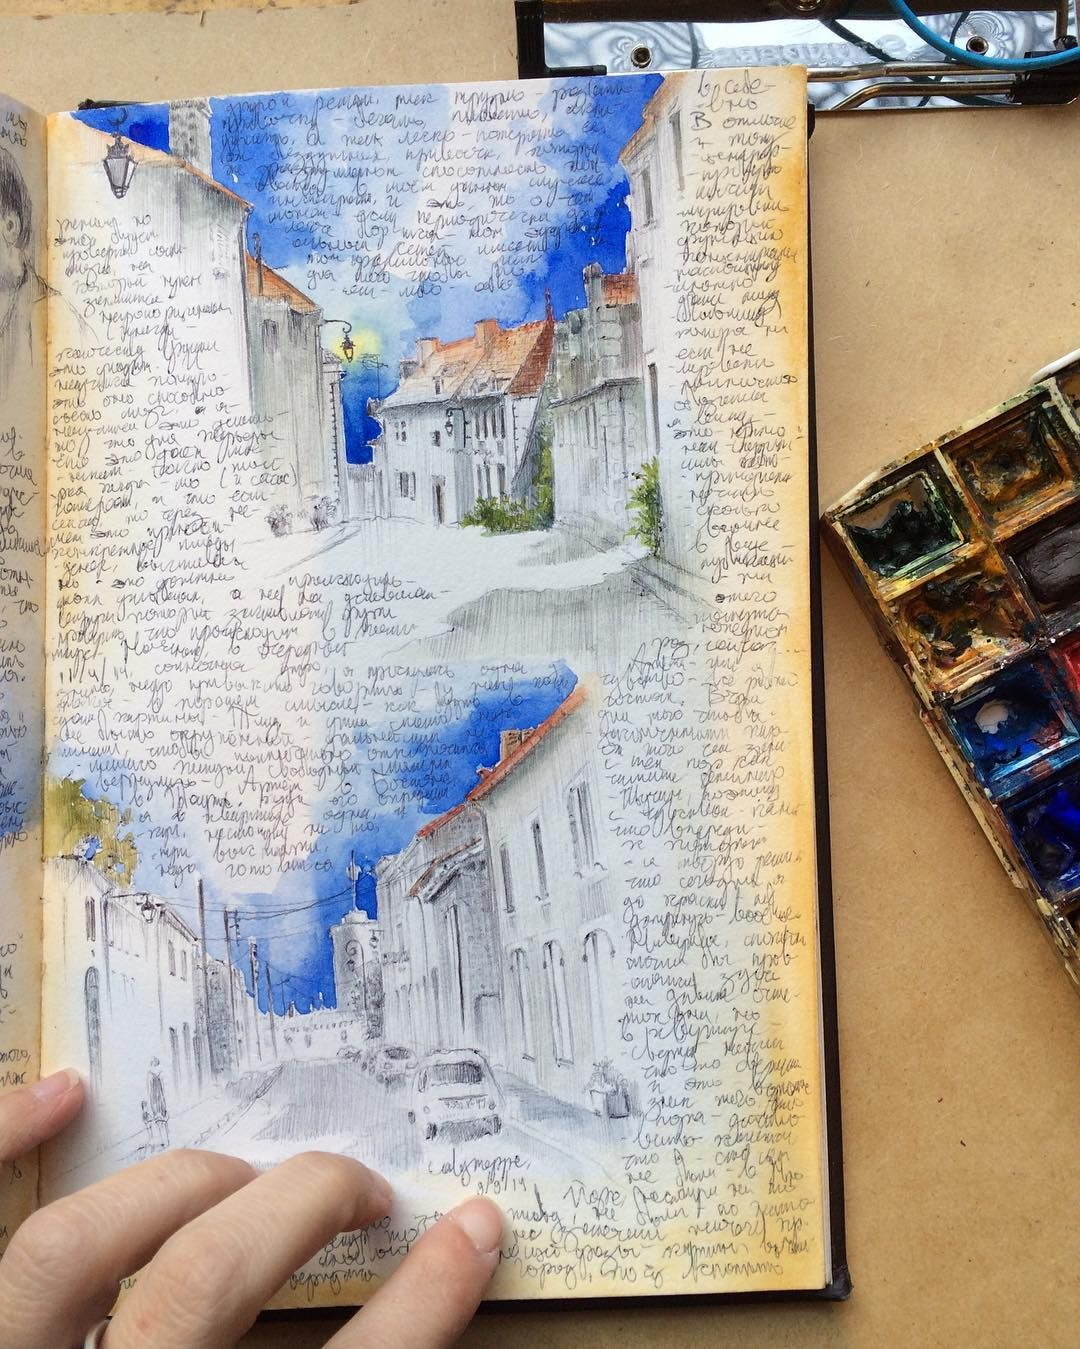 Arte France Journal Drawanyway One More Page From My Sketchbook Drawings From The